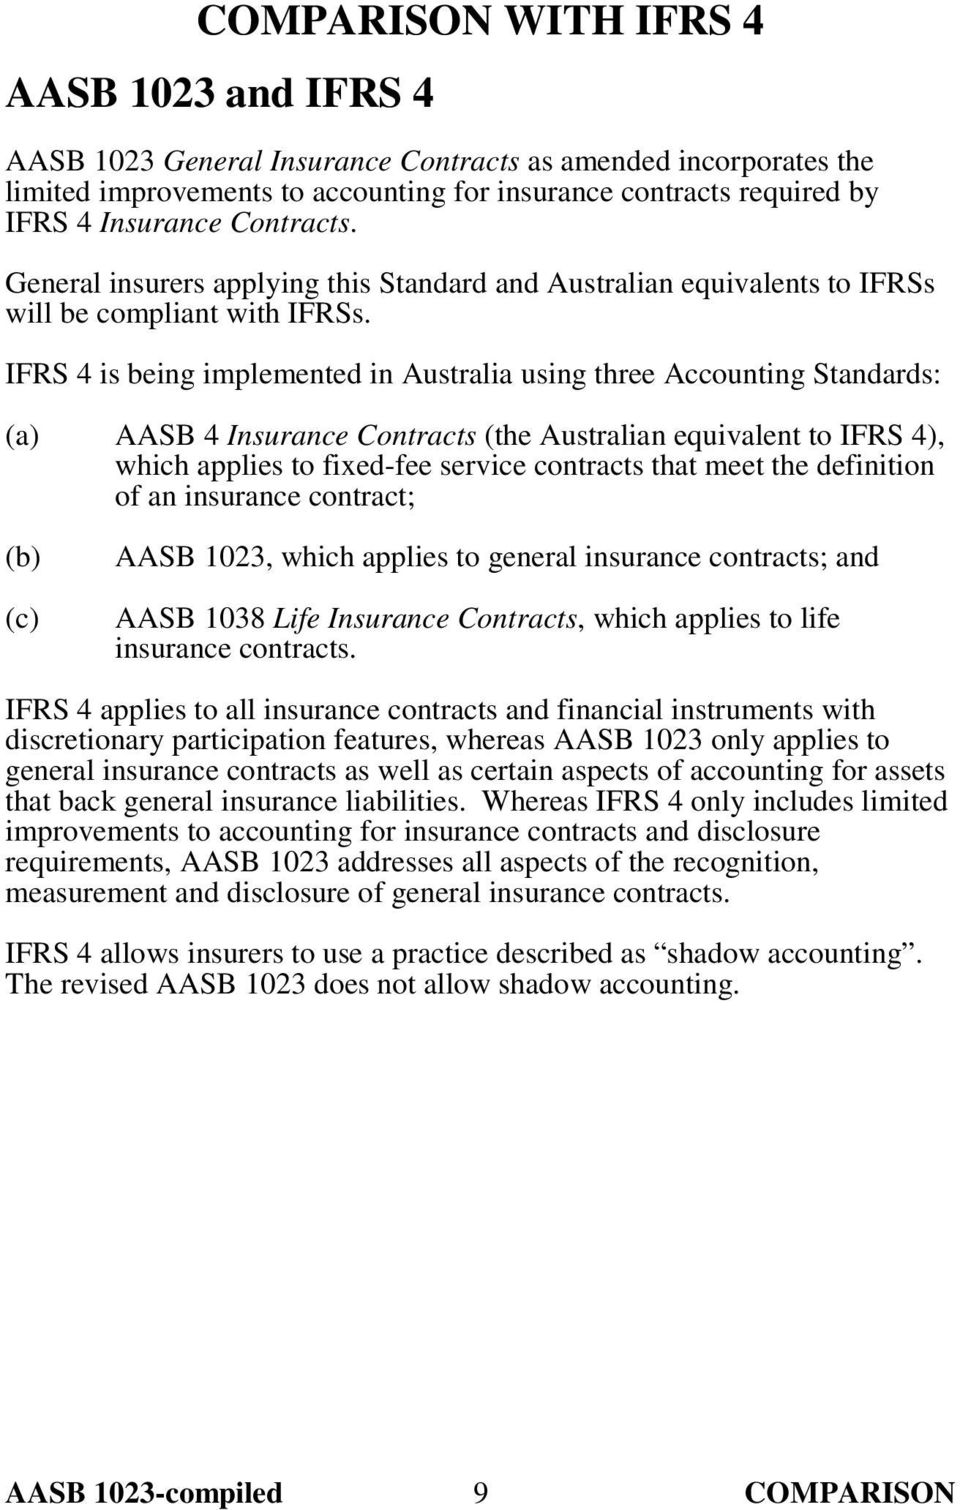 IFRS 4 is being implemented in Australia using three Accounting Standards: AASB 4 Insurance Contracts (the Australian equivalent to IFRS 4), which applies to fixed-fee service contracts that meet the